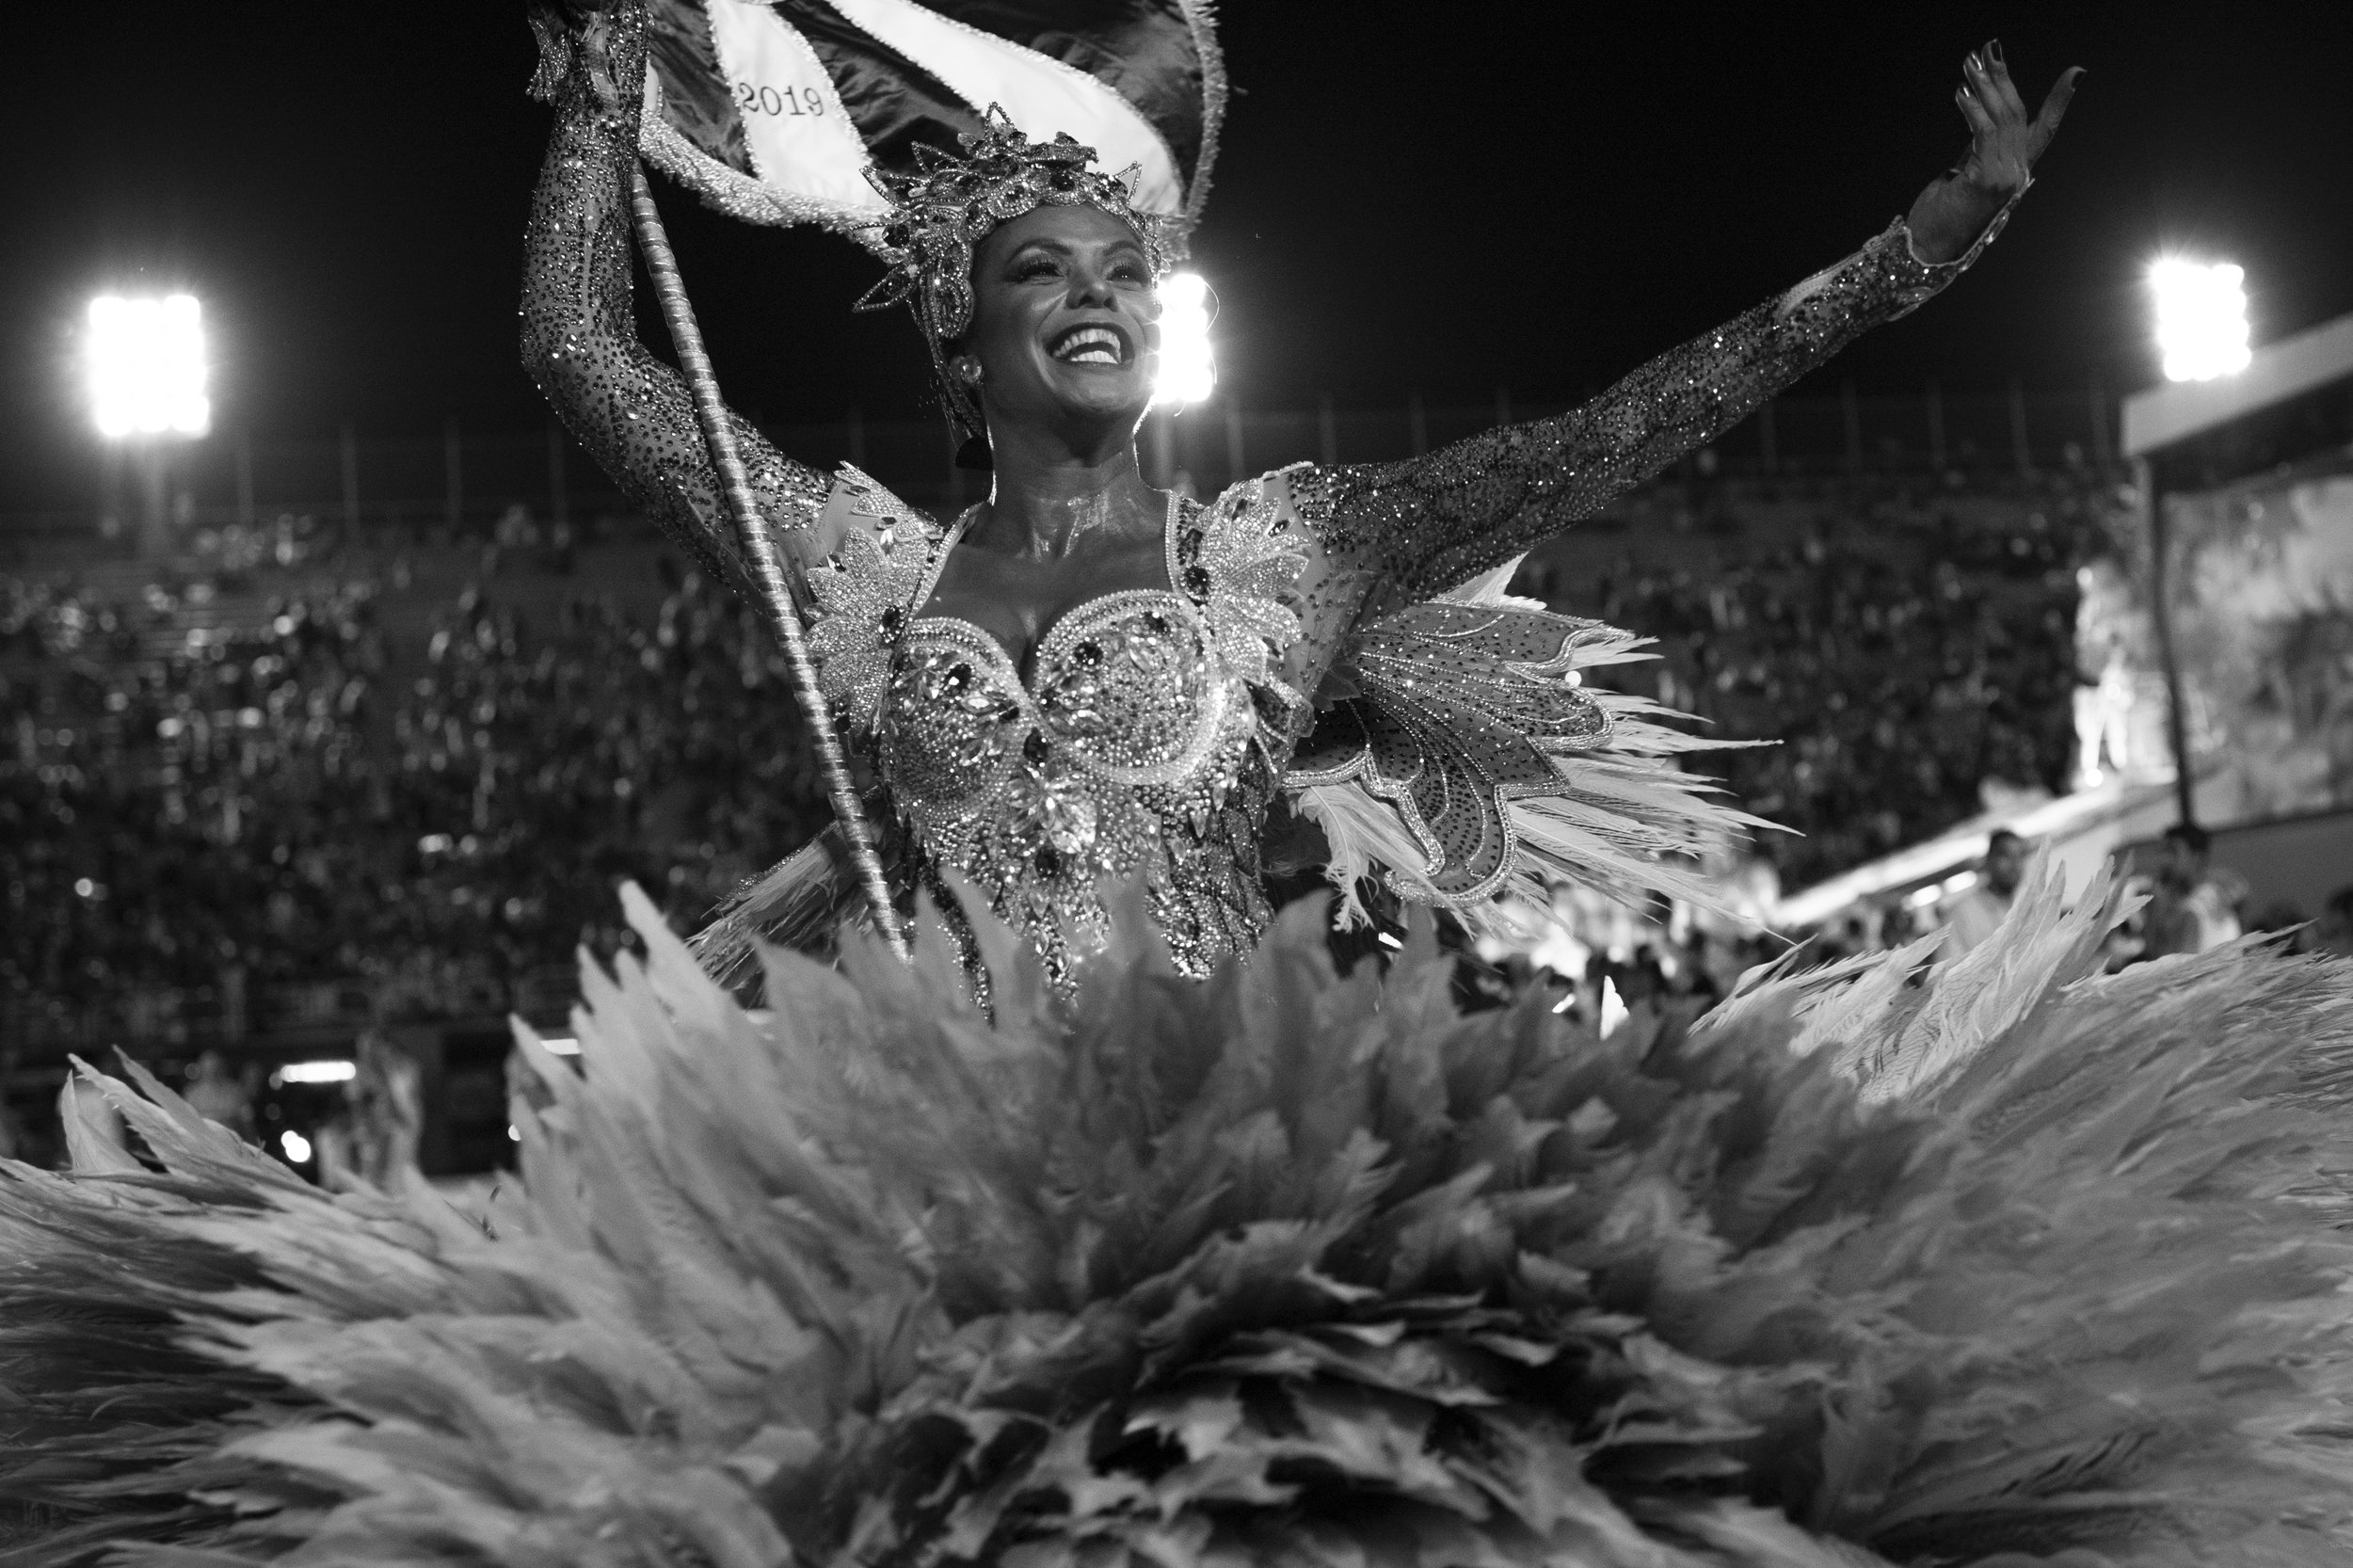 Revellers from Beija-Flor samba school perform during the second night of the Carnival parade at the Sambadrome in Rio de Janeiro. UOL/Lucas Landau